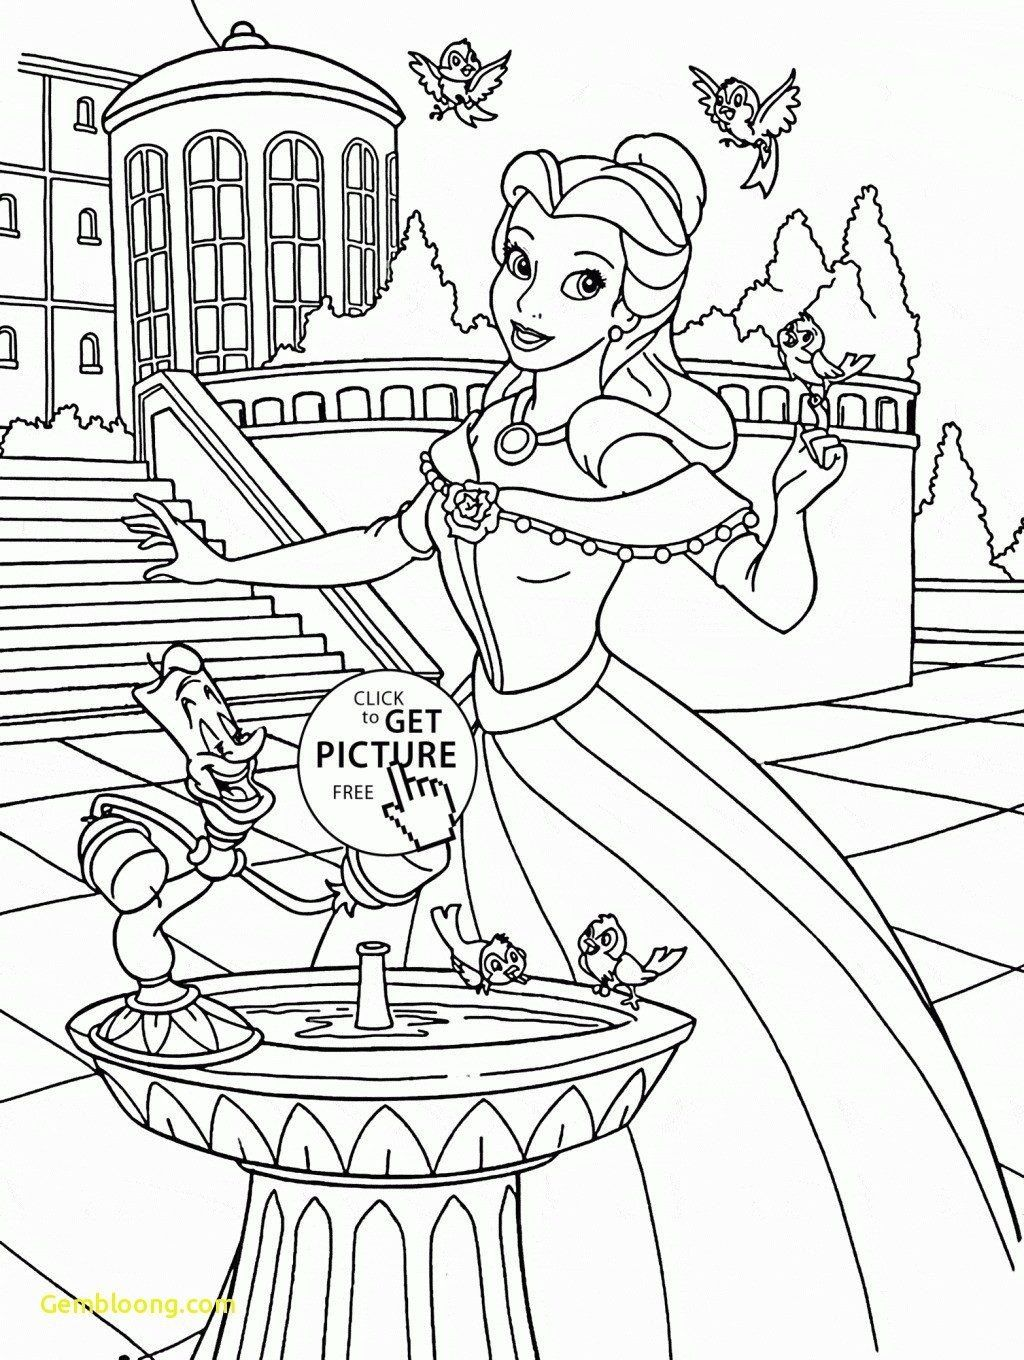 Disney Coloring Pages Pdf Coloring Pages Disney Coloring Games Princess Dress Up For In 2020 Disney Princess Coloring Pages Unicorn Coloring Pages Belle Coloring Pages